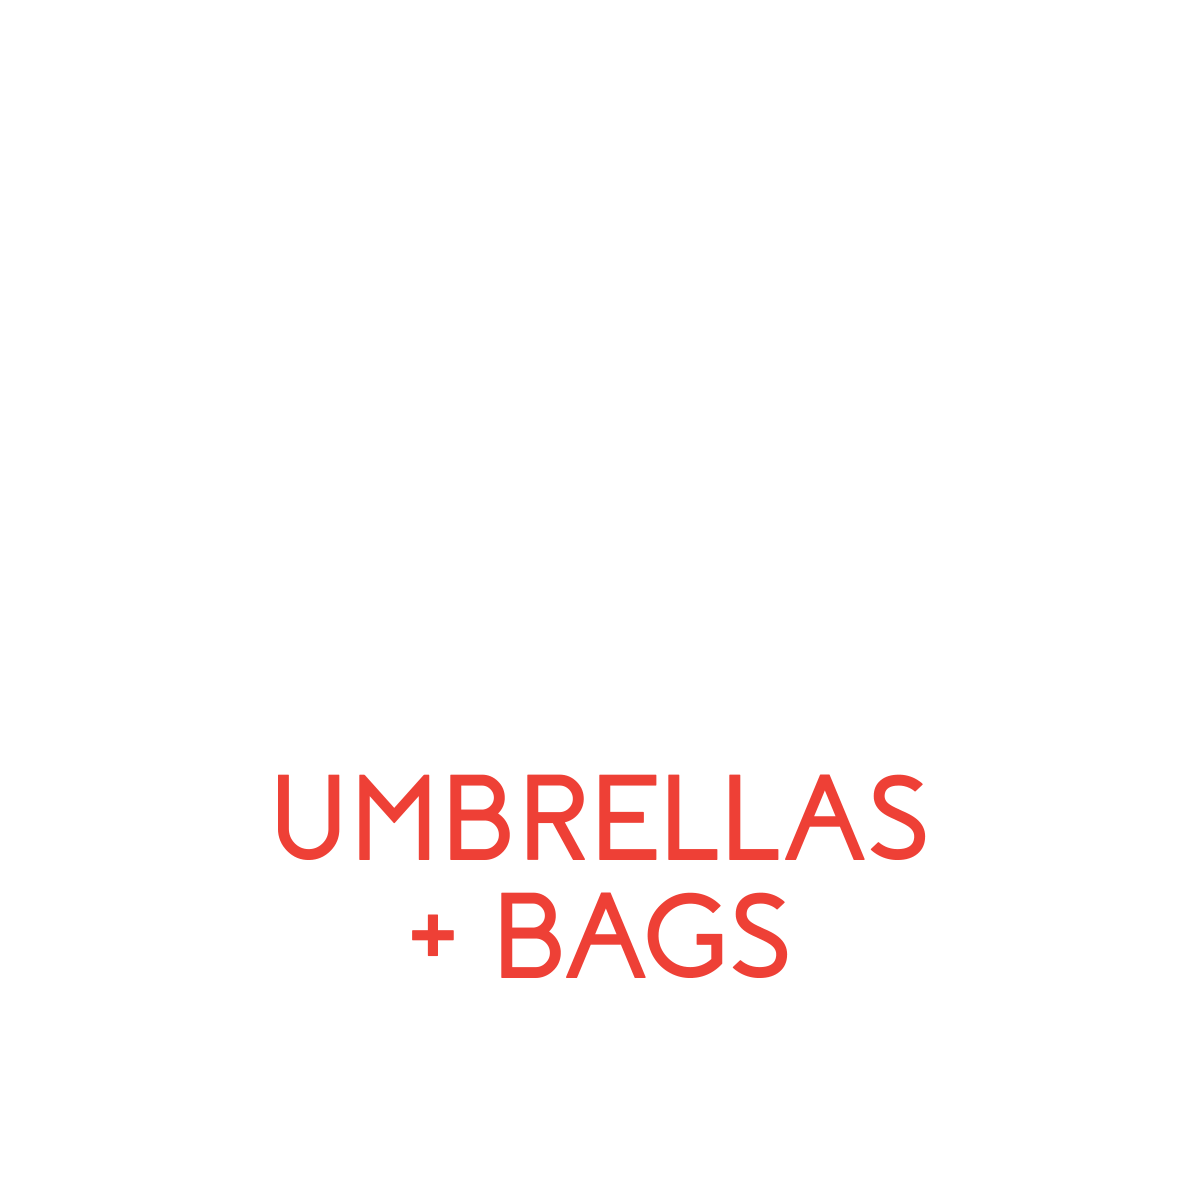 corporate bags branded umbrellas